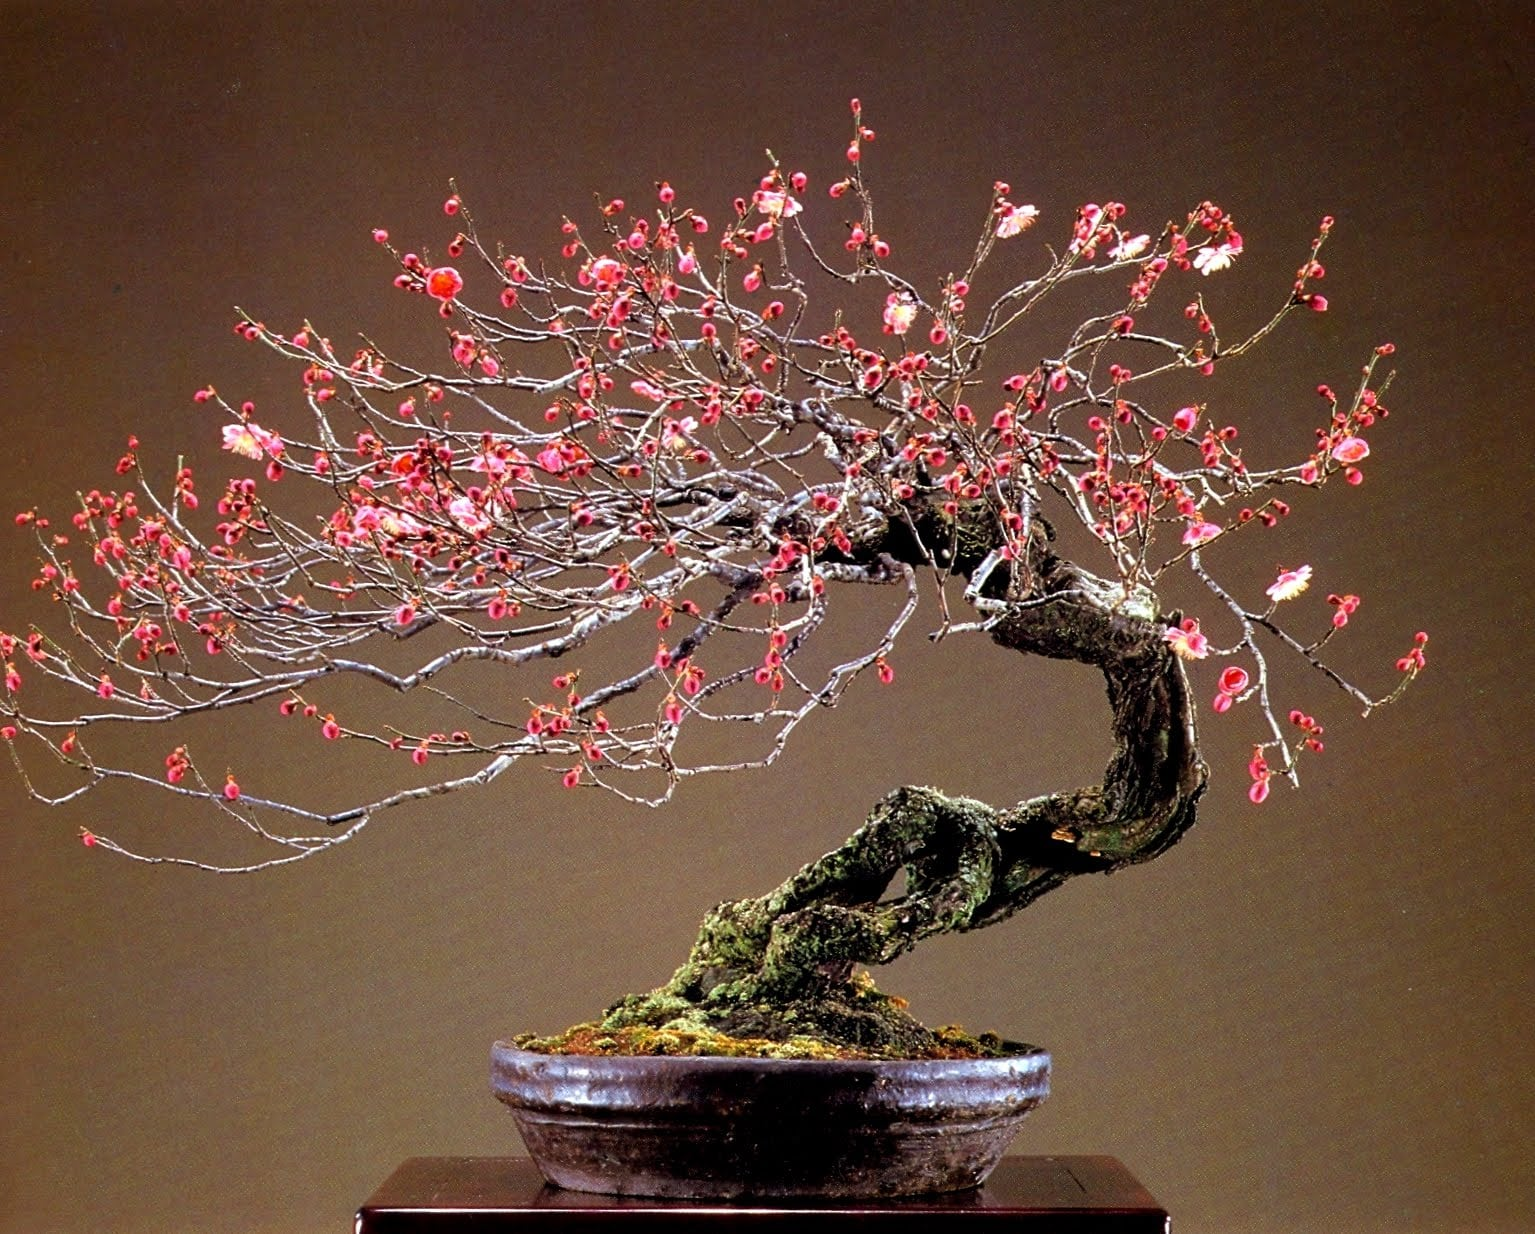 Prunus-Mume-Japanese-Apricot-Bonsai Wiring Bonsai on bonsai lamps, bonsai jade, bonsai tools, bonsai starter, bonsai cultivation and care, bonsai tree, bonsai blue, bonsai artist, bonsai copper wire, bonsai accessories, bonsai wire sets, bonsai wire sizes, indoor bonsai, national bonsai foundation, bonsai ficus varieties, bonsai shapes, bonsai without wires,